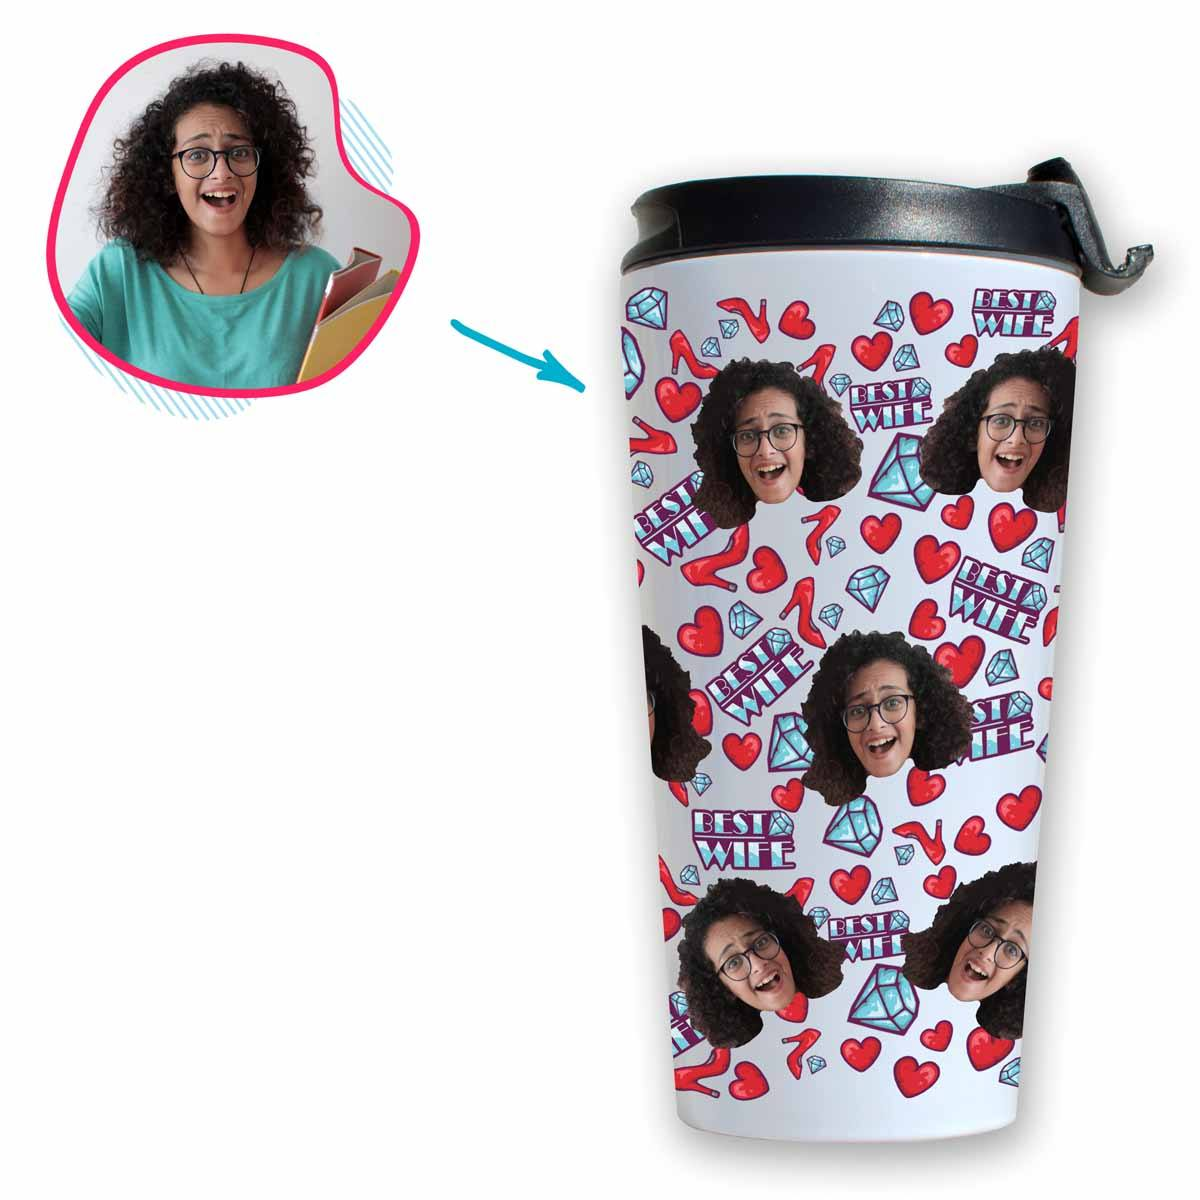 White Wife personalized travel mug with photo of face printed on it